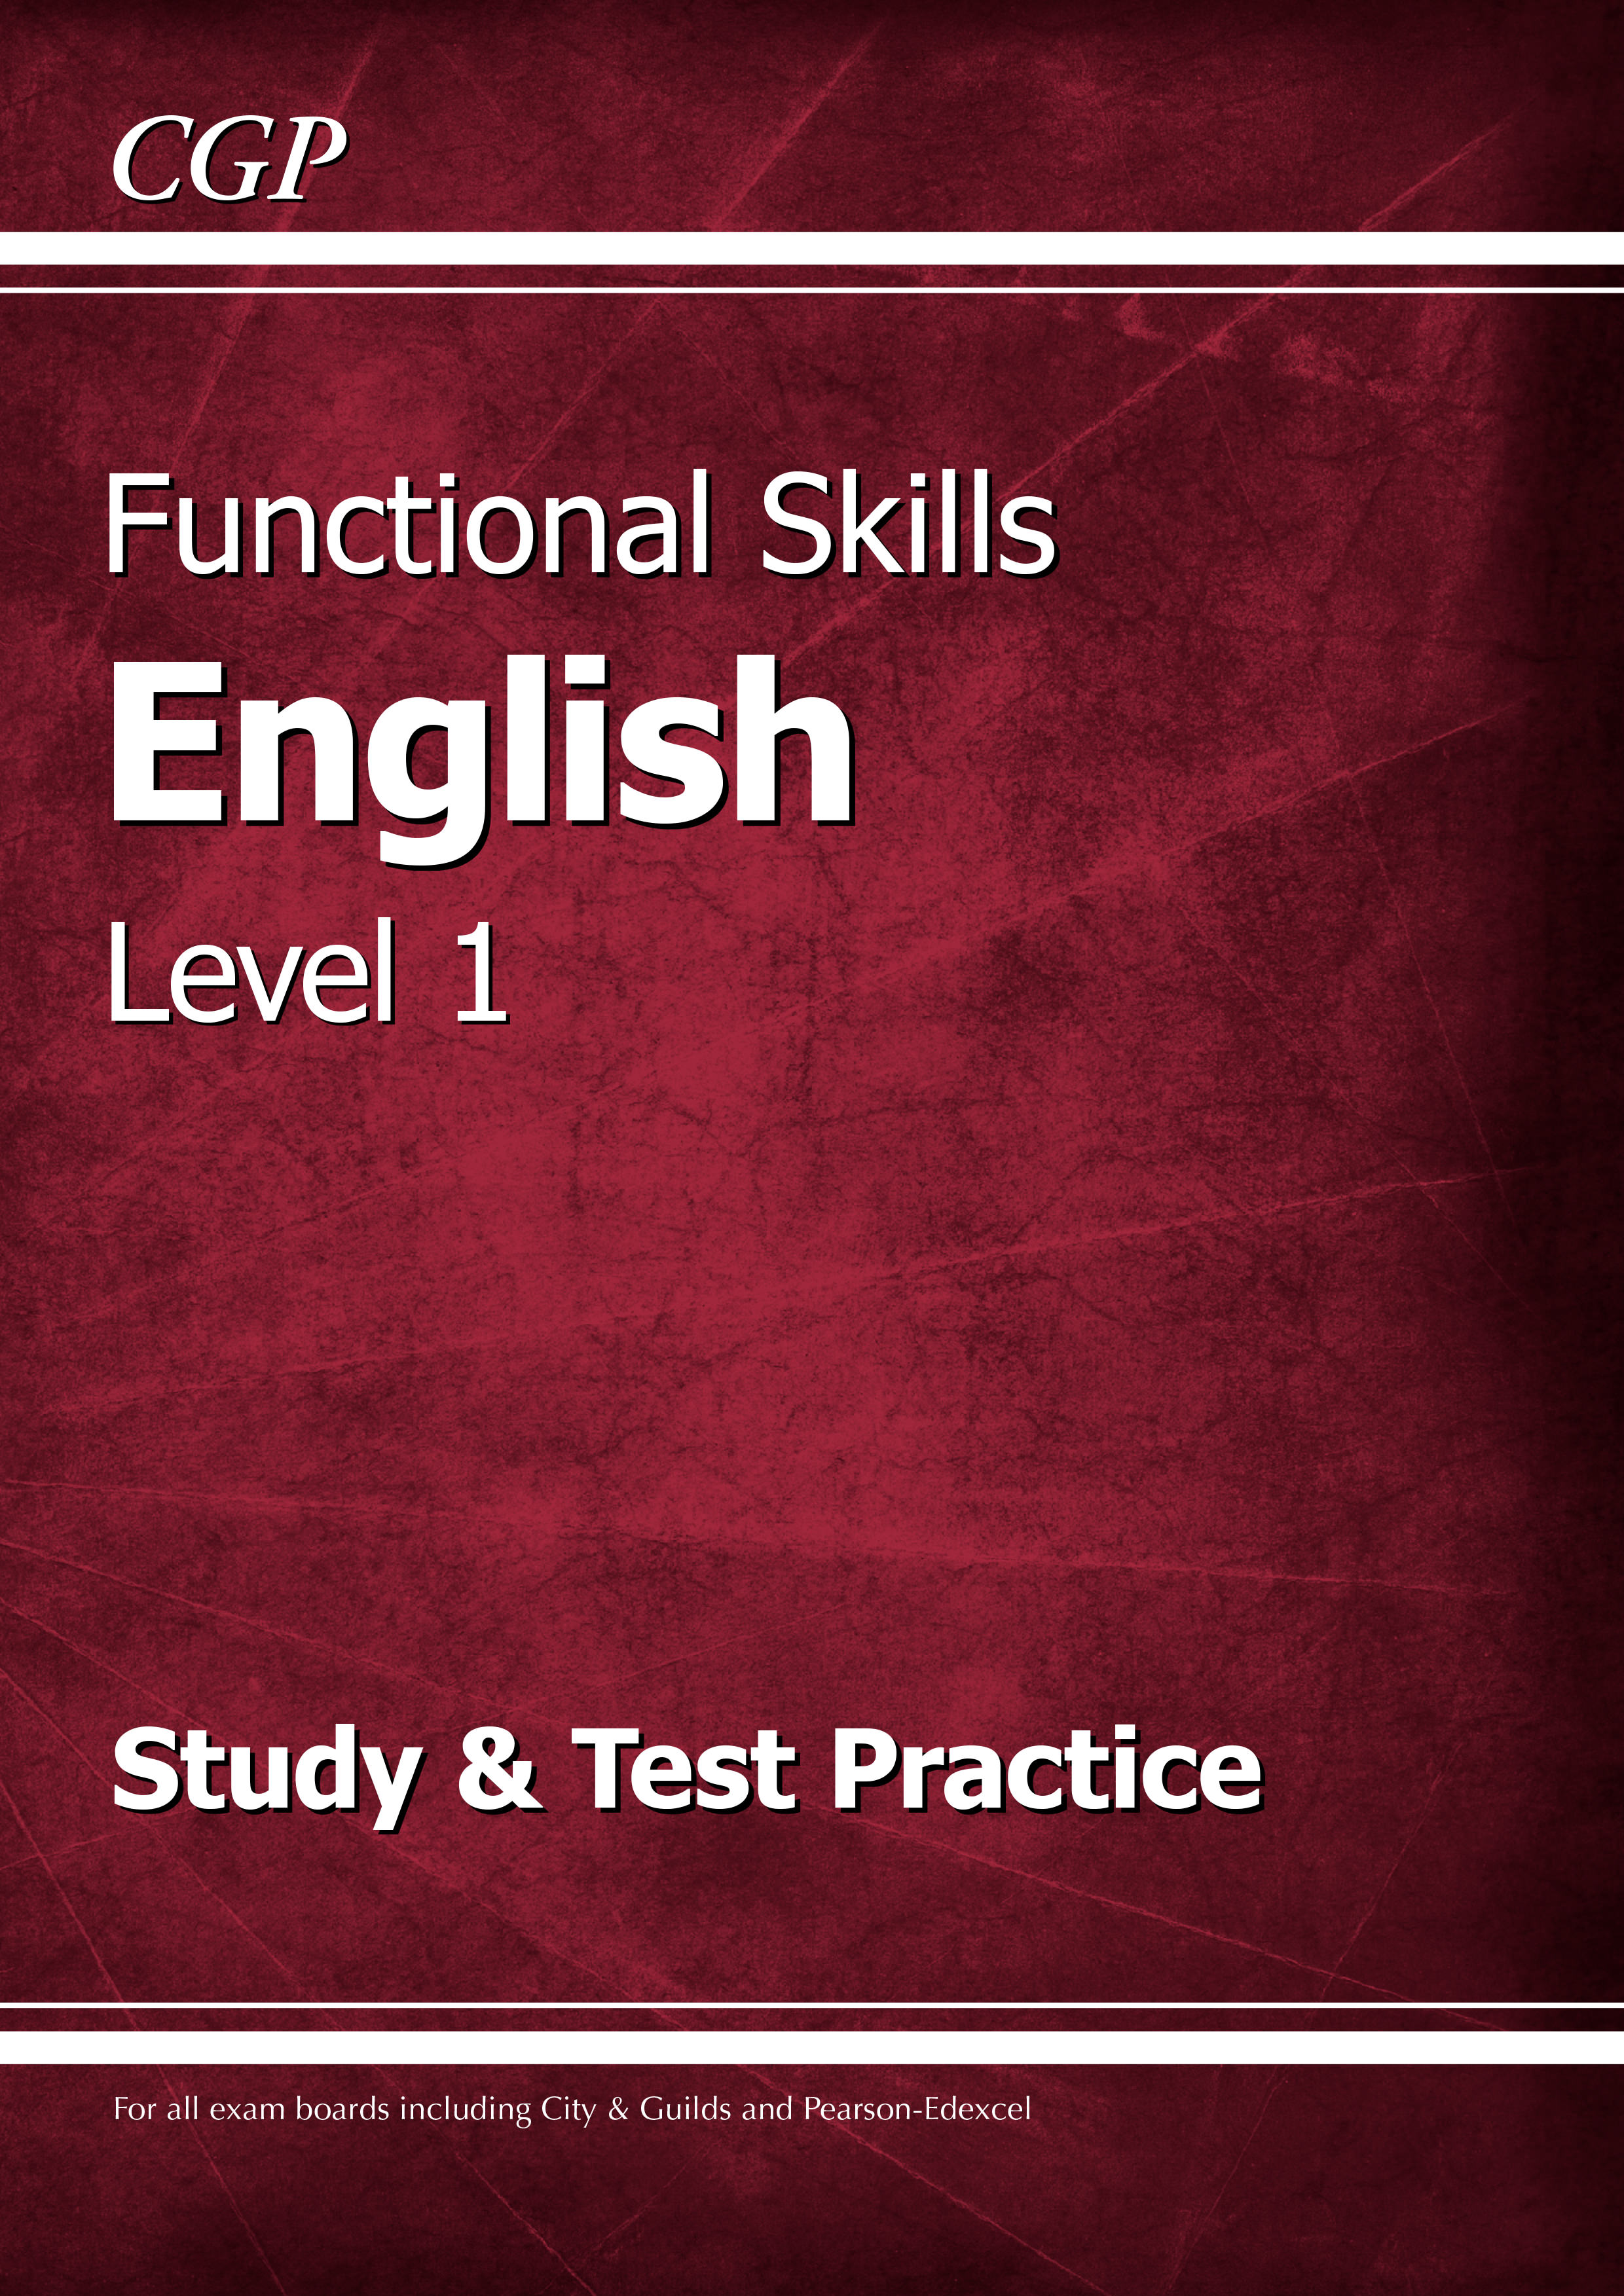 E1SRA2DK - Functional Skills English Level 1 - Study & Test Practice